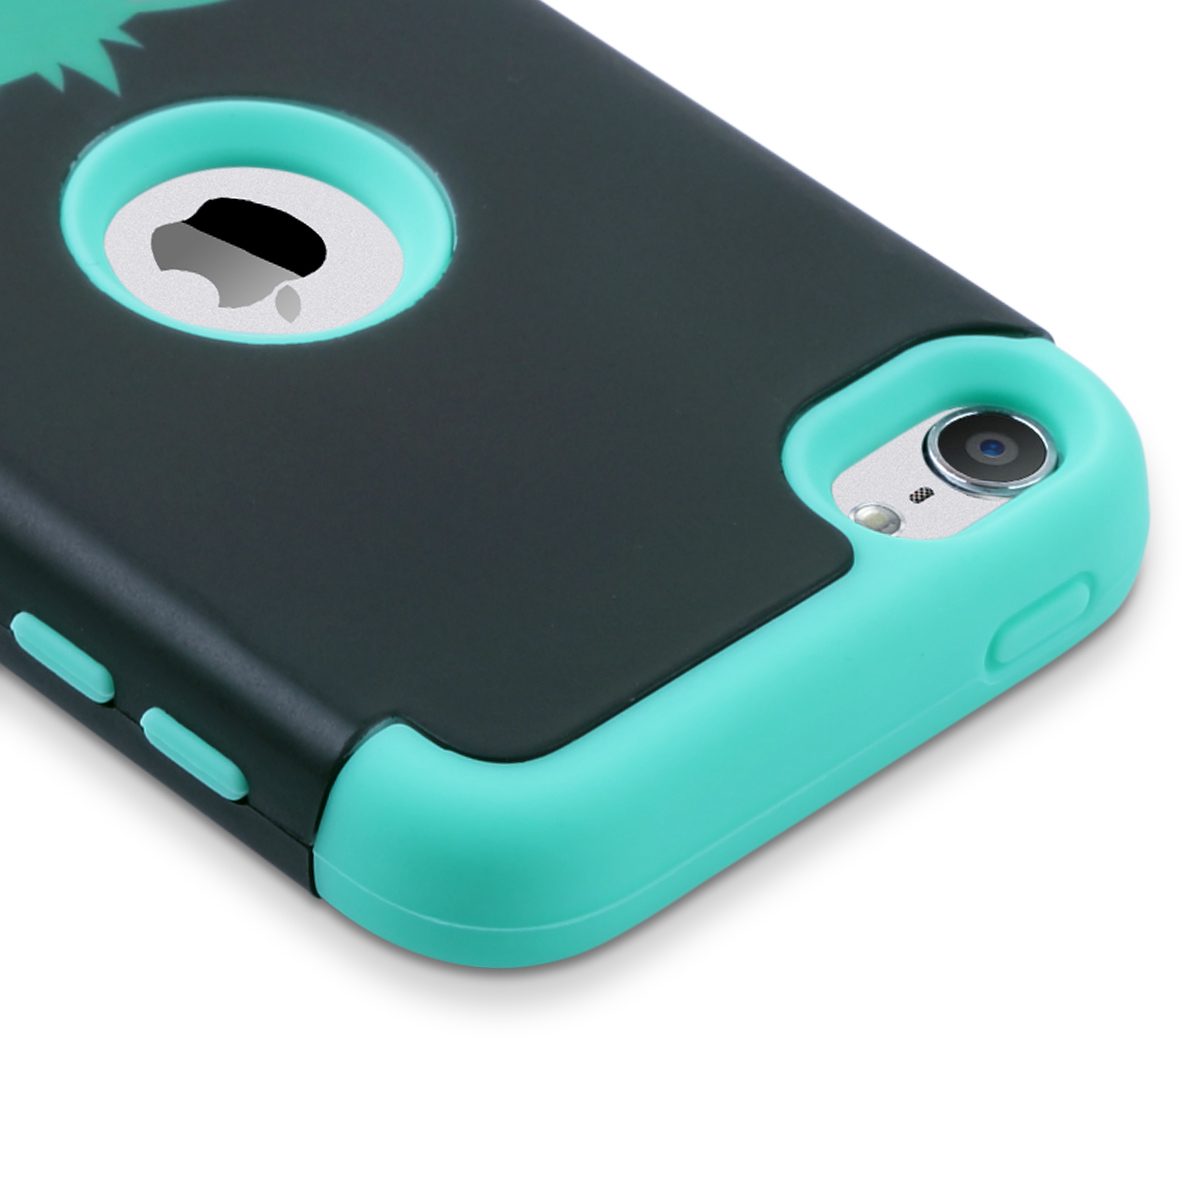 Hybrid-Hard-Protective-Silicon-TPU-Case-for-Apple-iPod-Touch-5-6th-Generation thumbnail 48